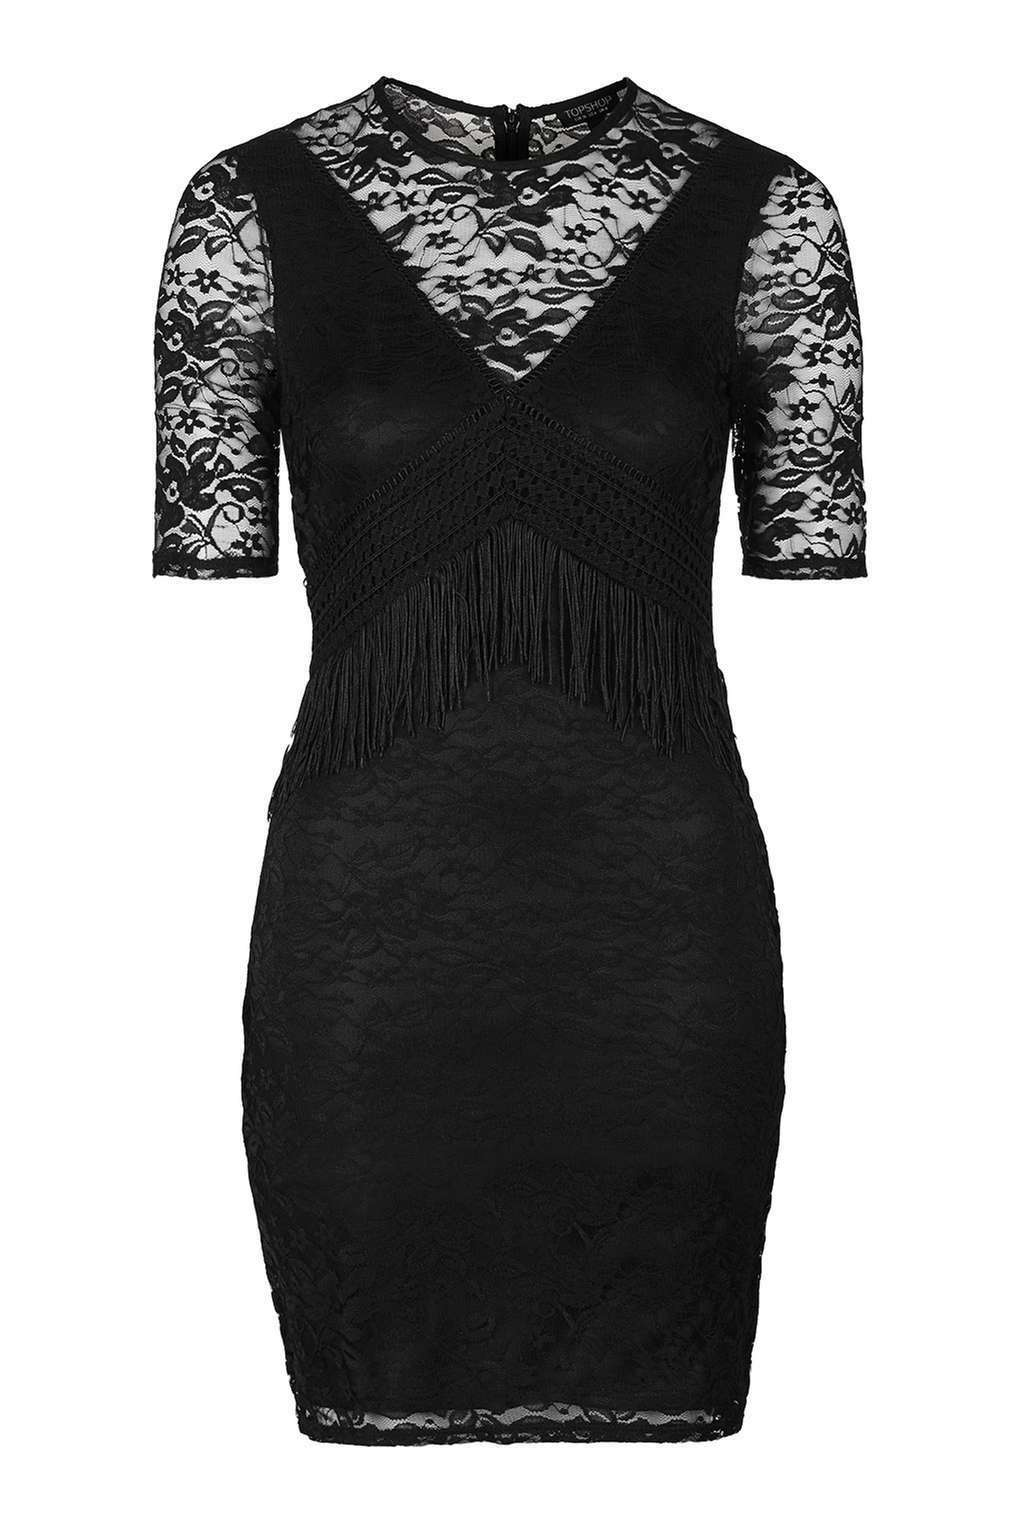 TOPSHOP Lace Fringe Dress Size 12 RRP .00 BRAND NEW